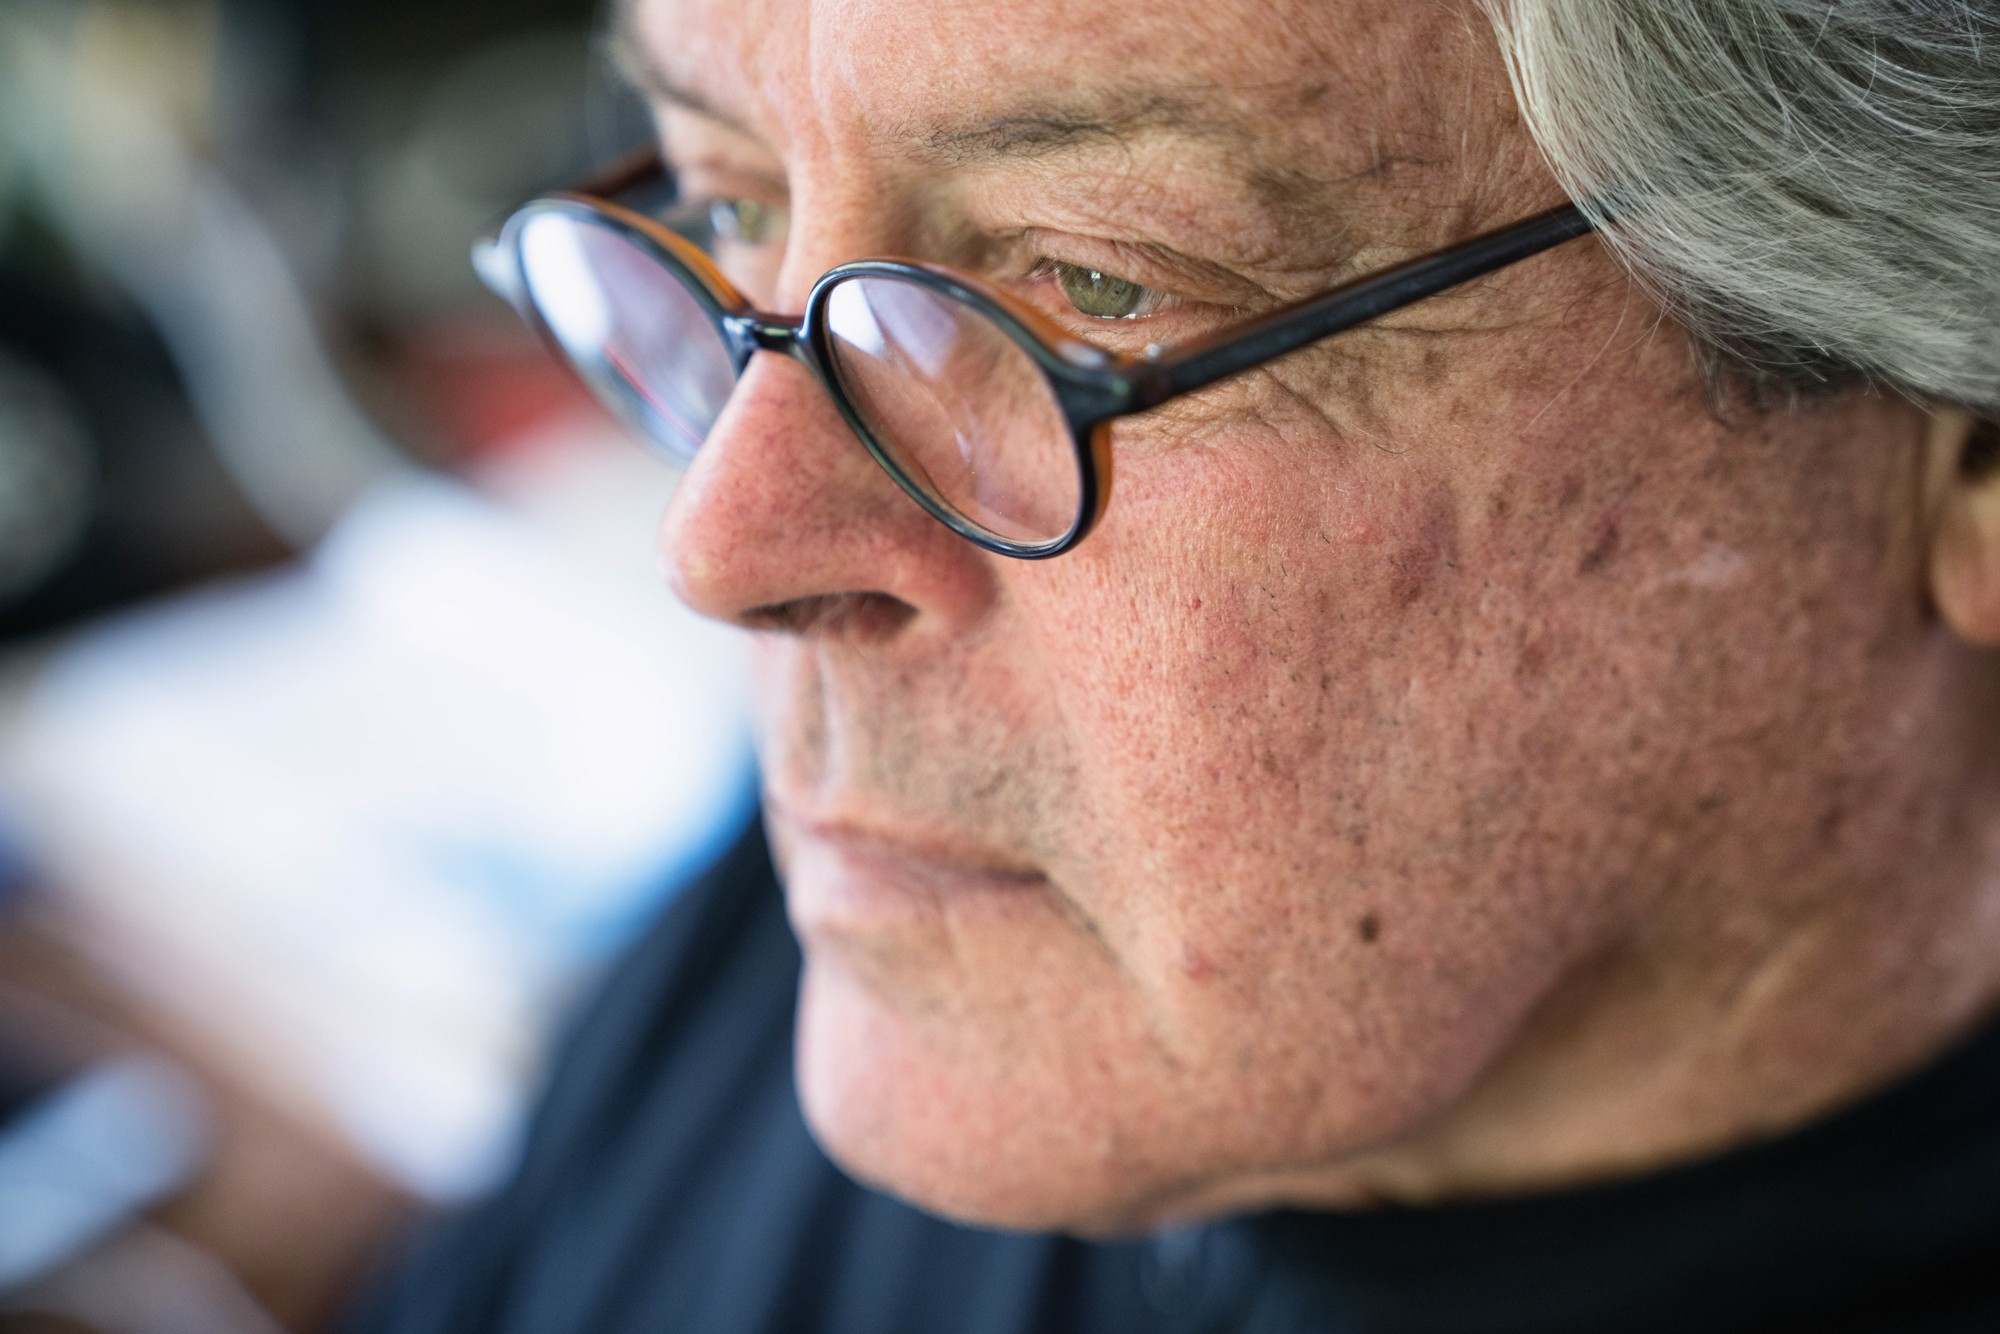 More Than Memory: Coping With The Other Ills Of Alzheimer's